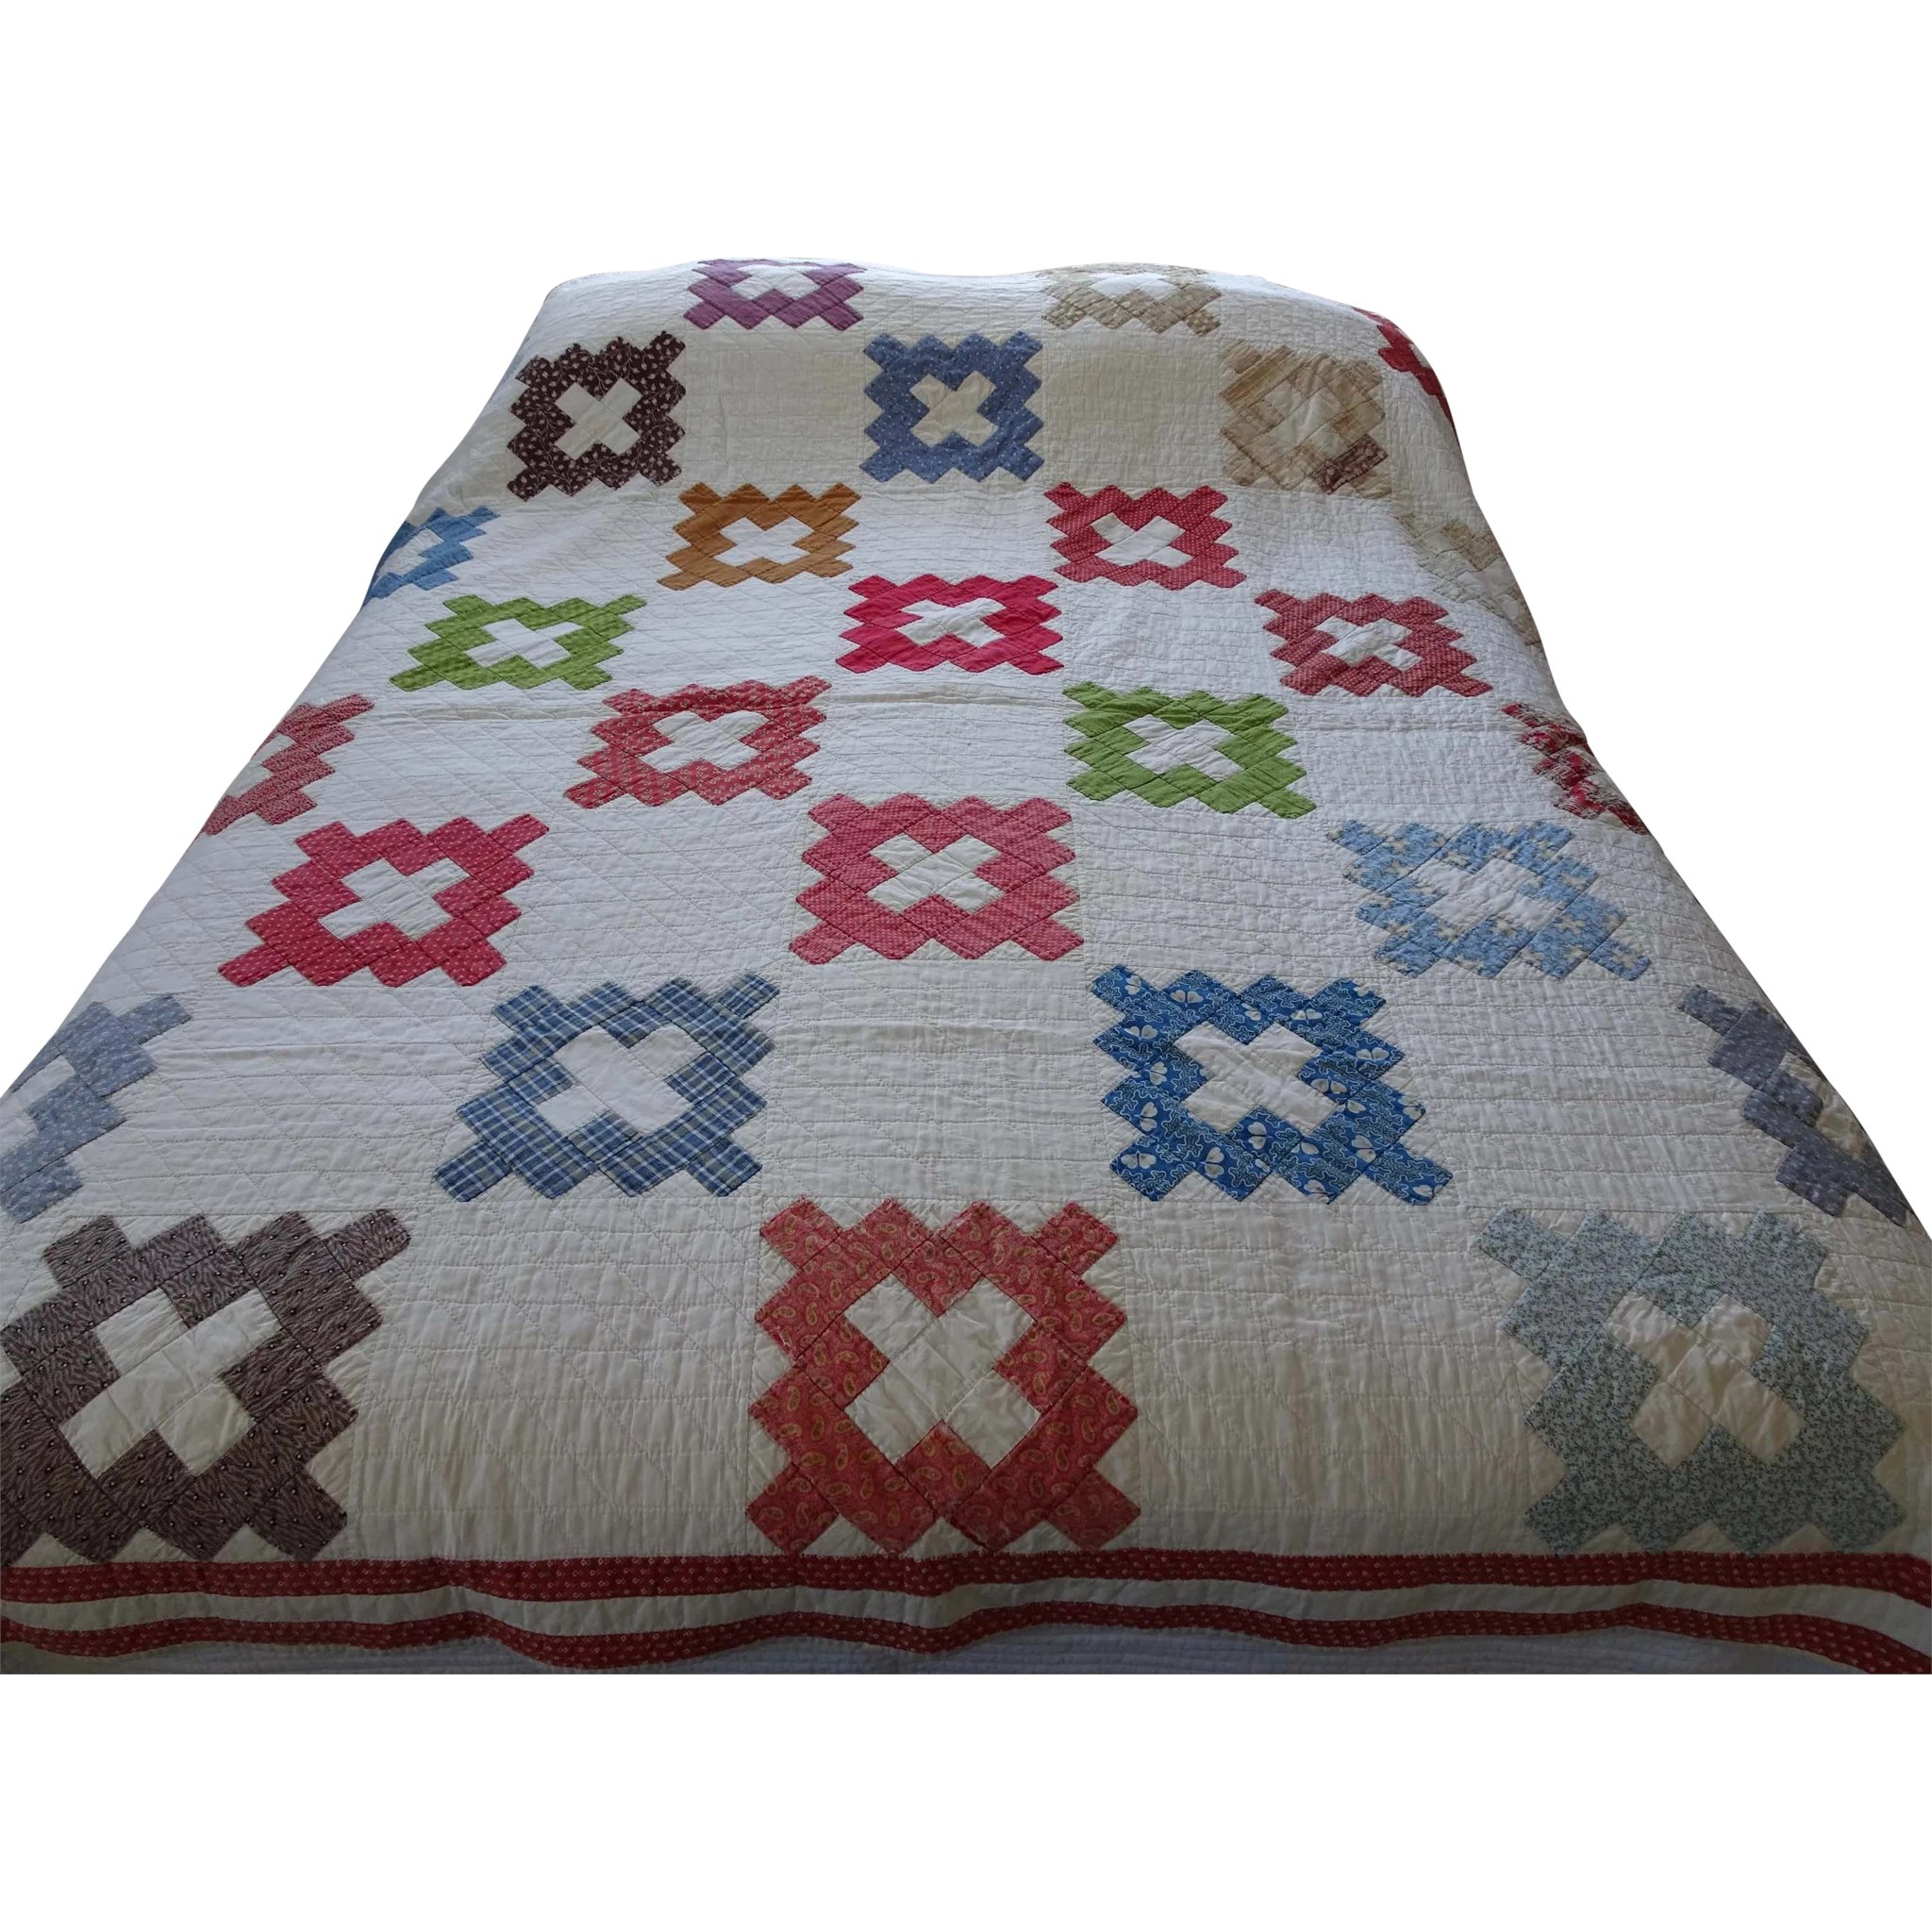 Quilt Coverlet American Quilt Or Coverlet Enwoods Ruby Lane